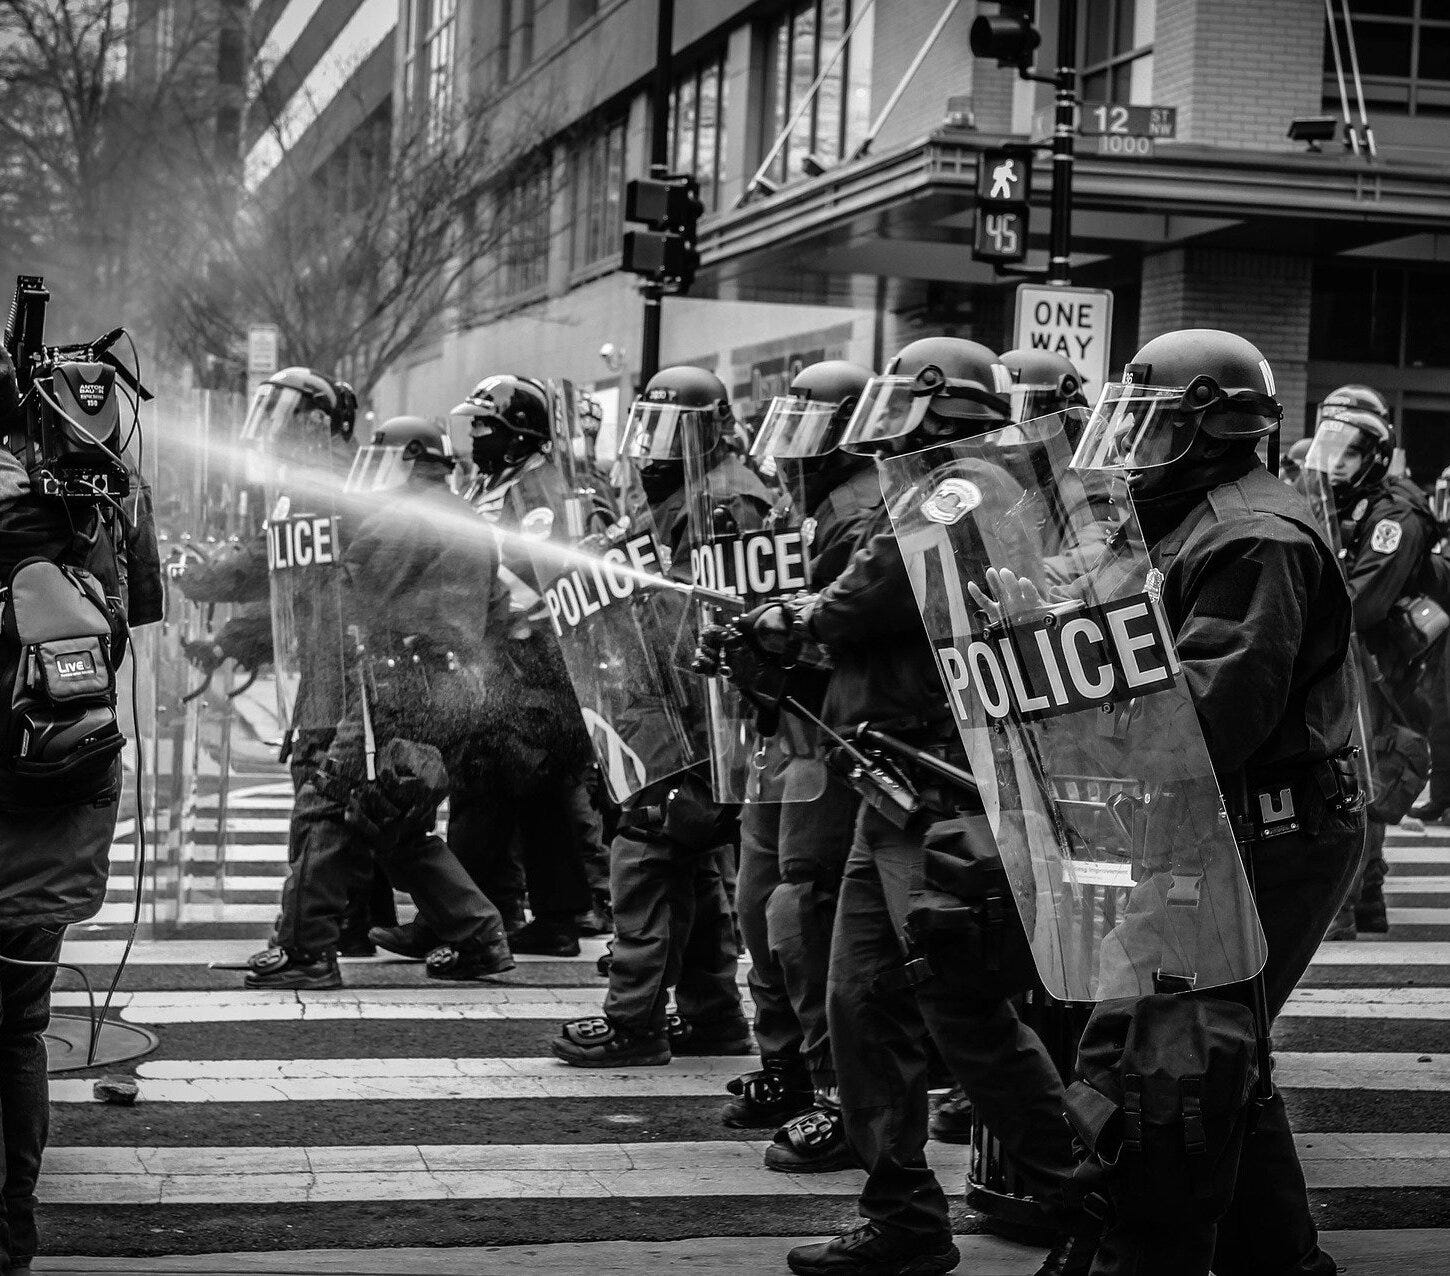 Do the police need to be demilitarized?